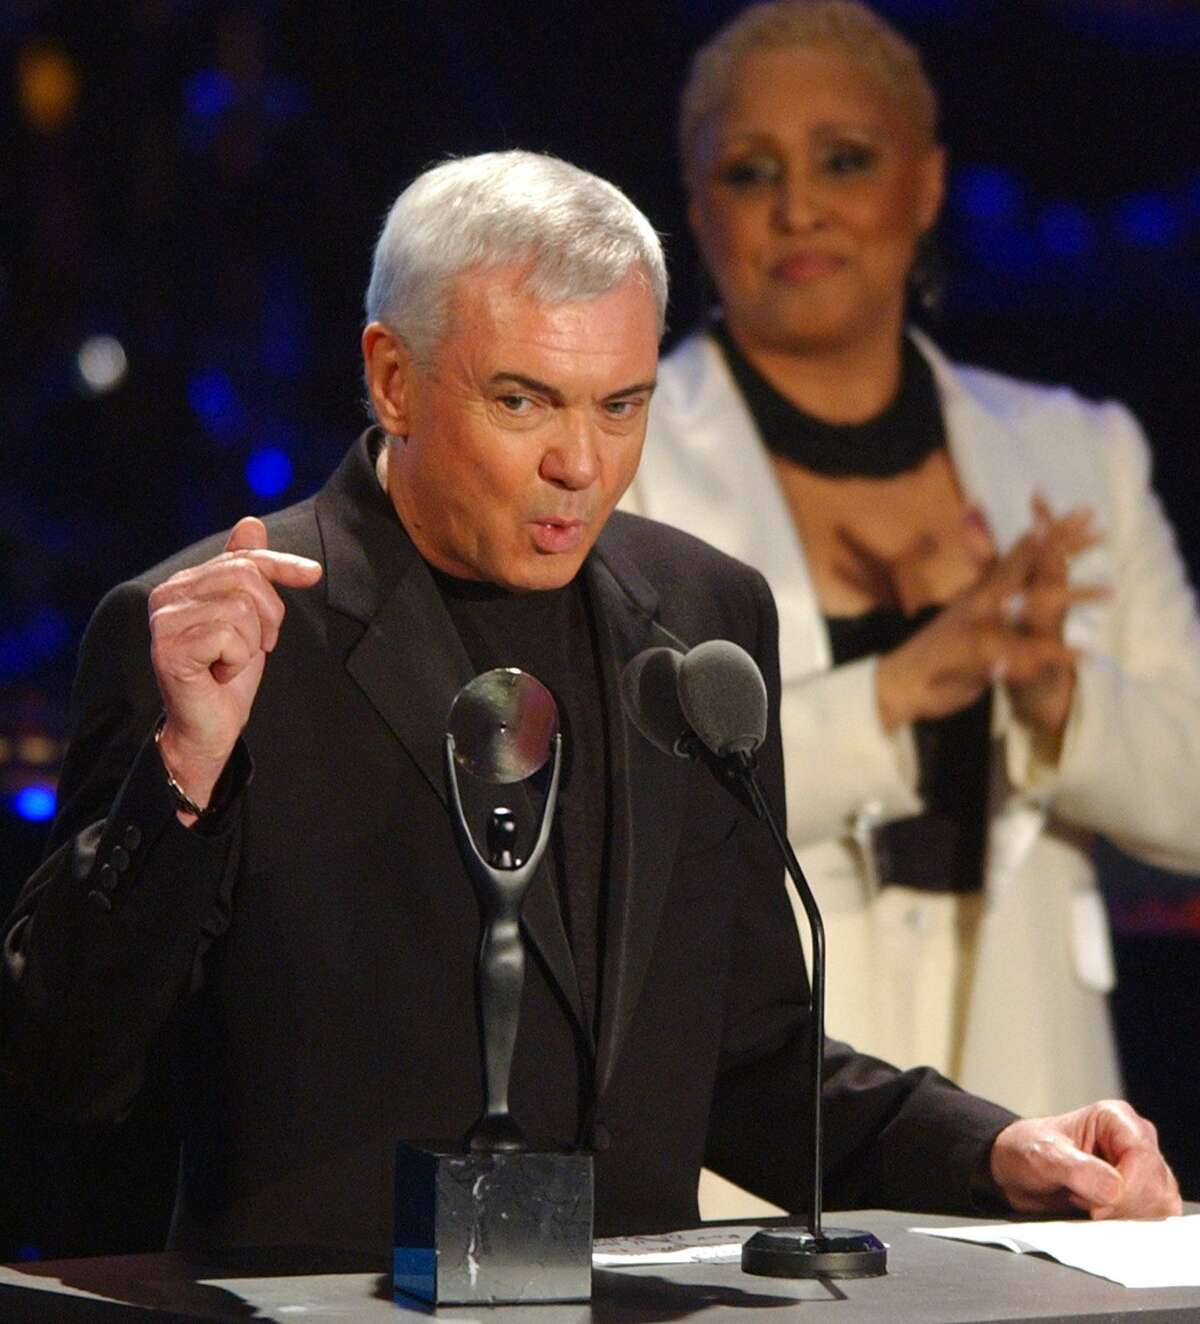 Gene Pitney points to his award while being inducted into the Rock and Roll Hall of Fame during the induction ceremony as Darlene Love looks on Monday, March 18, 2002, at New York's Waldorf Astoria.